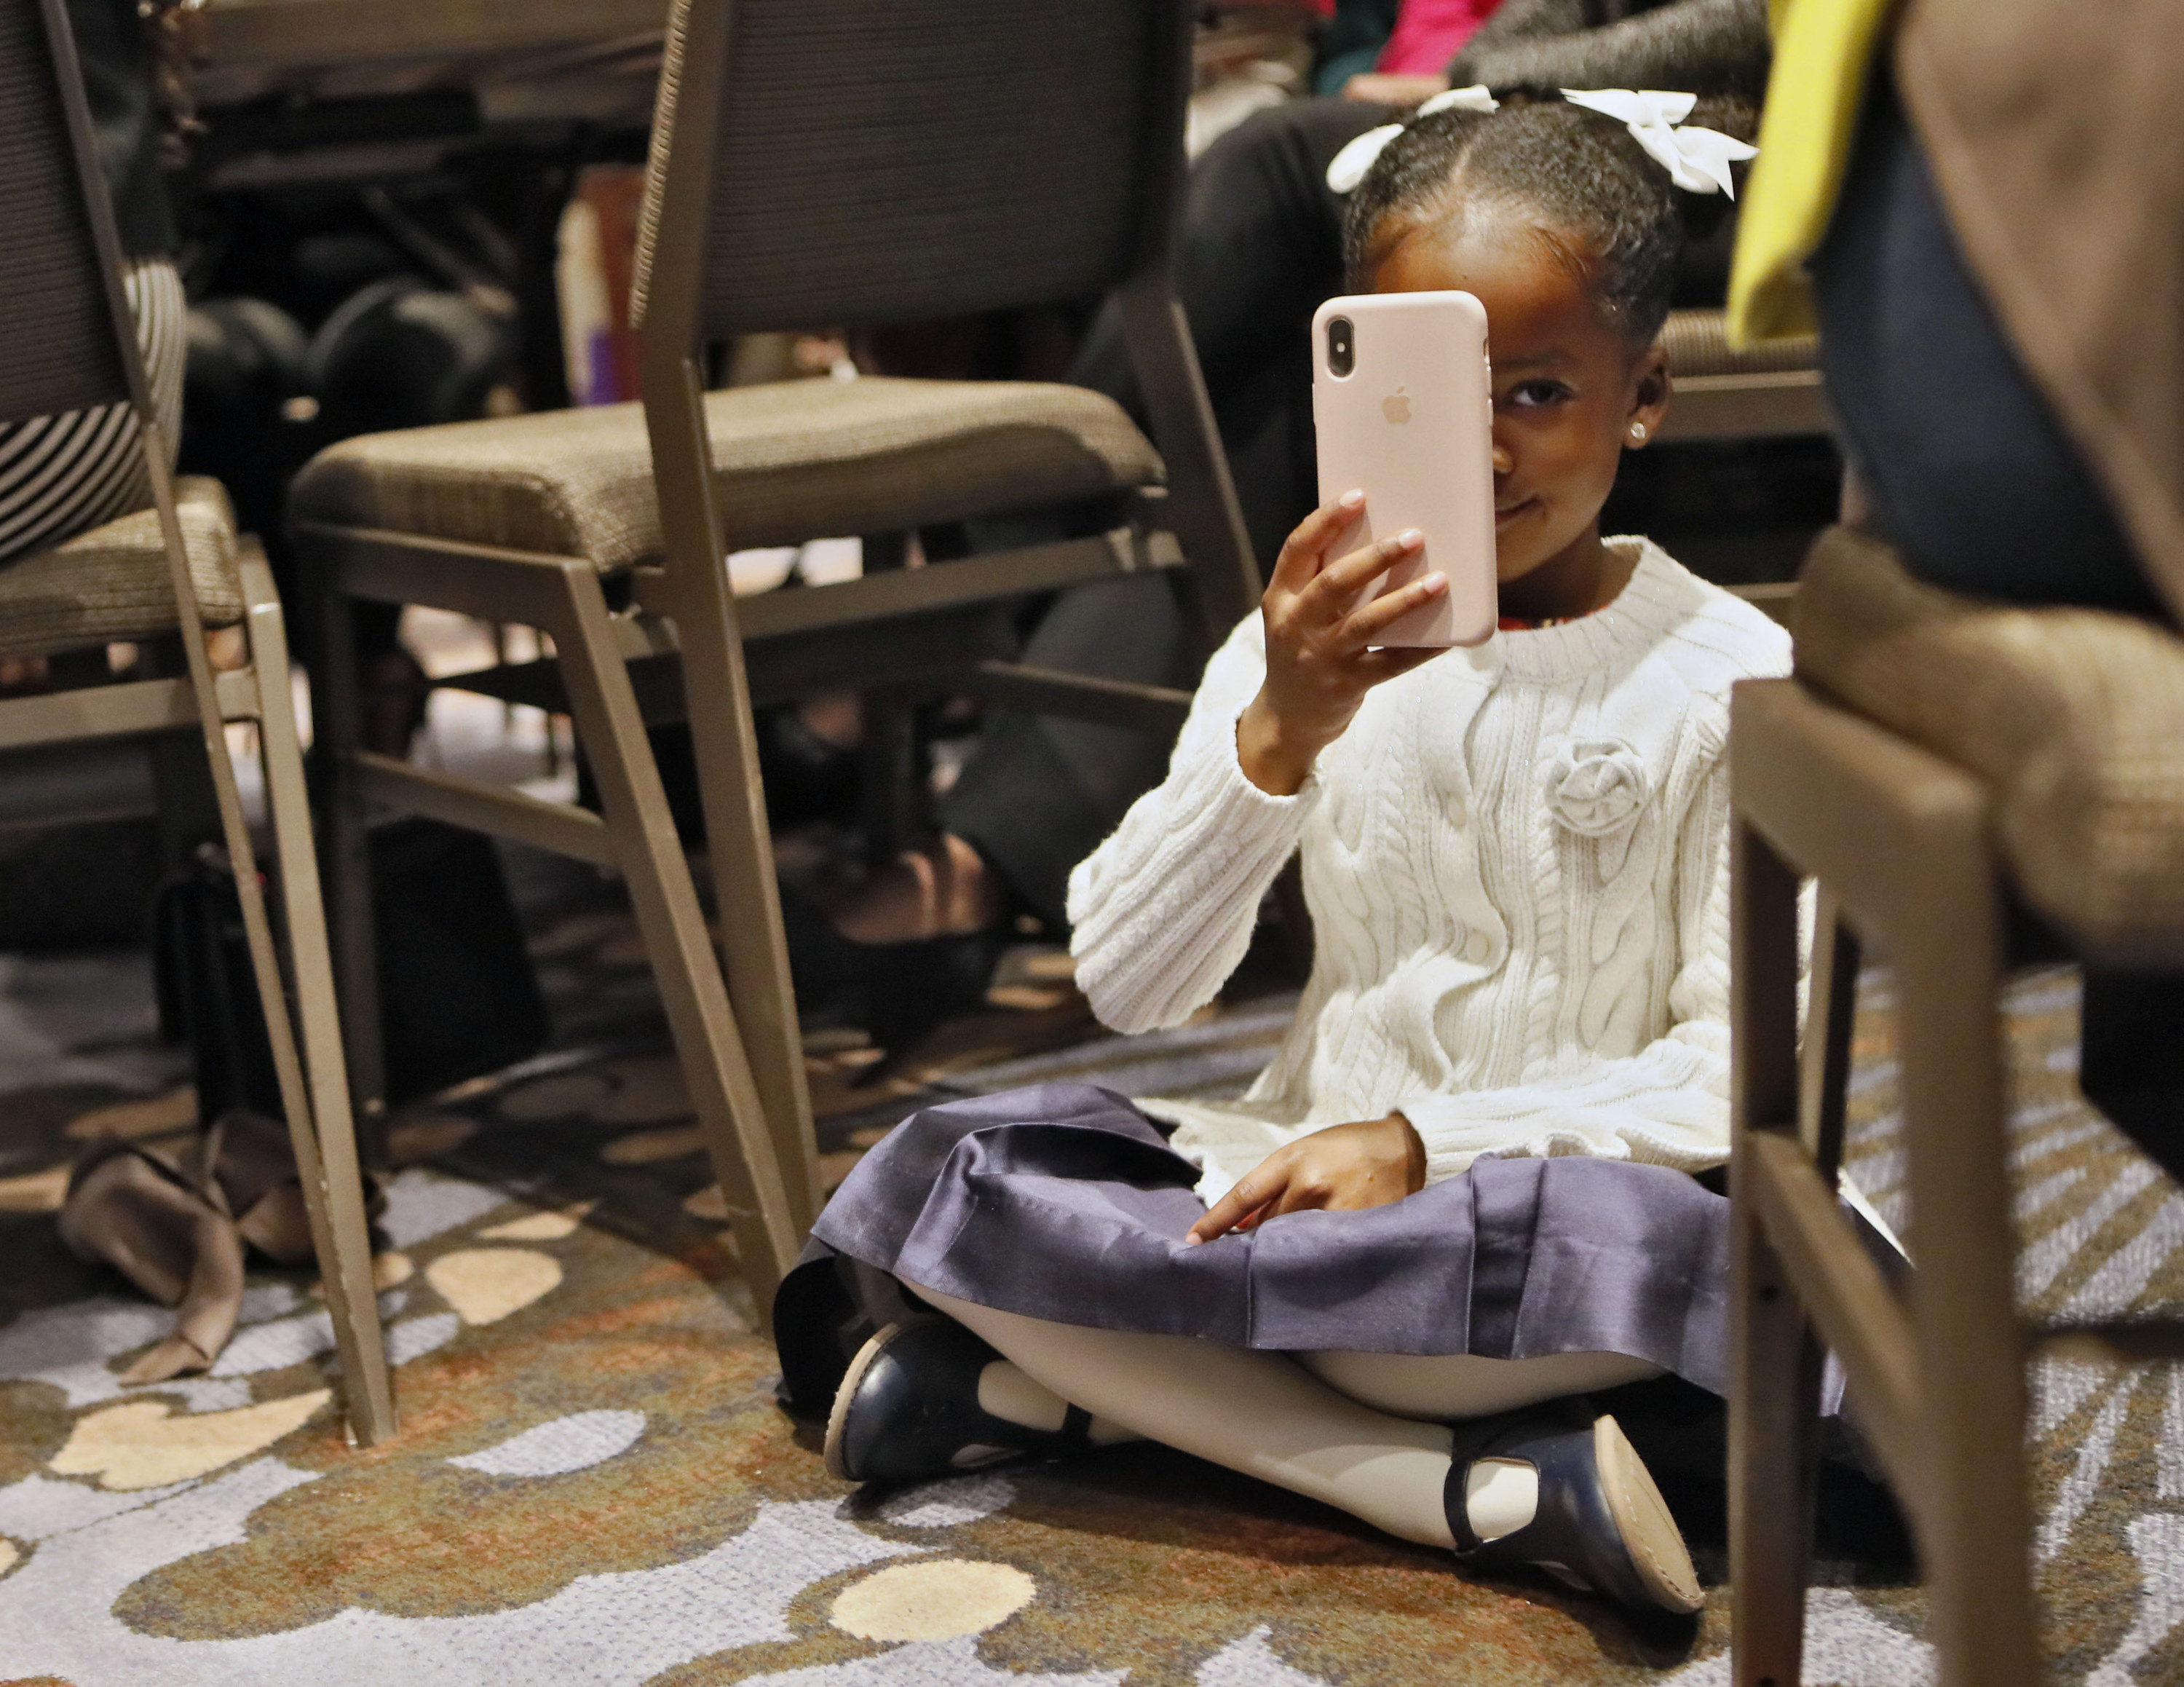 A young black girl sits on the floor and holds up a phone to take a picture